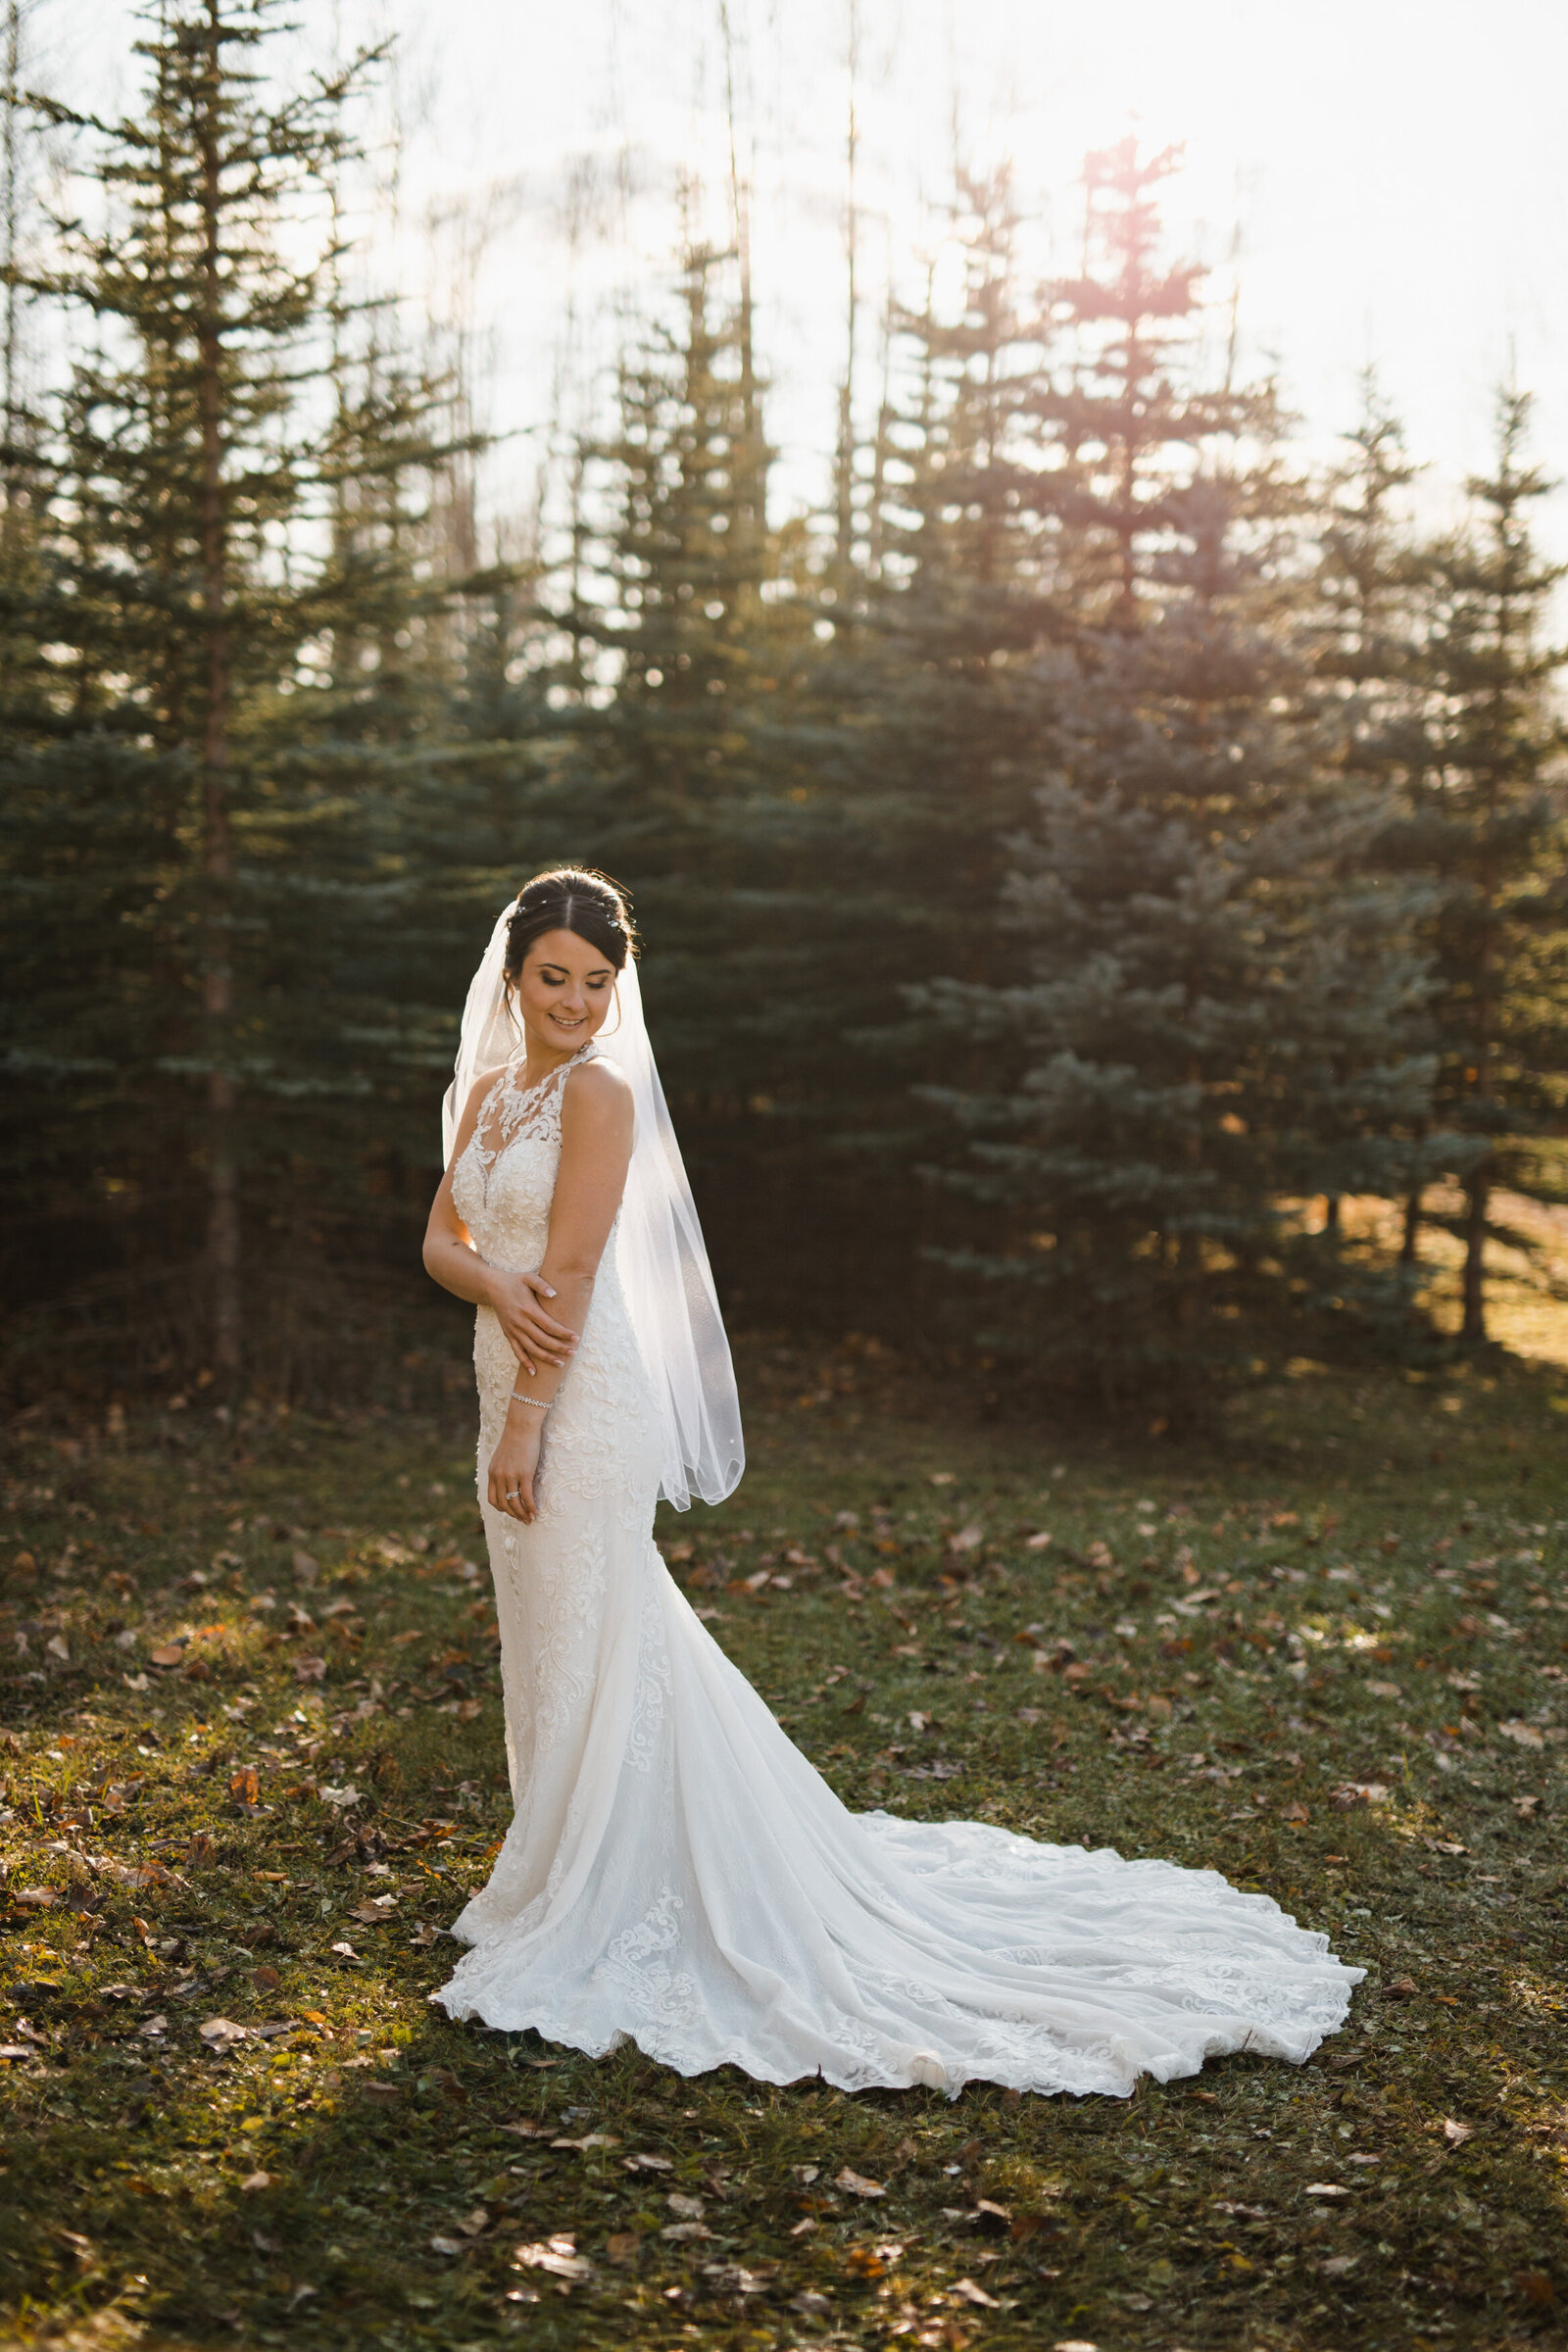 banff.wedding.photographer-6990